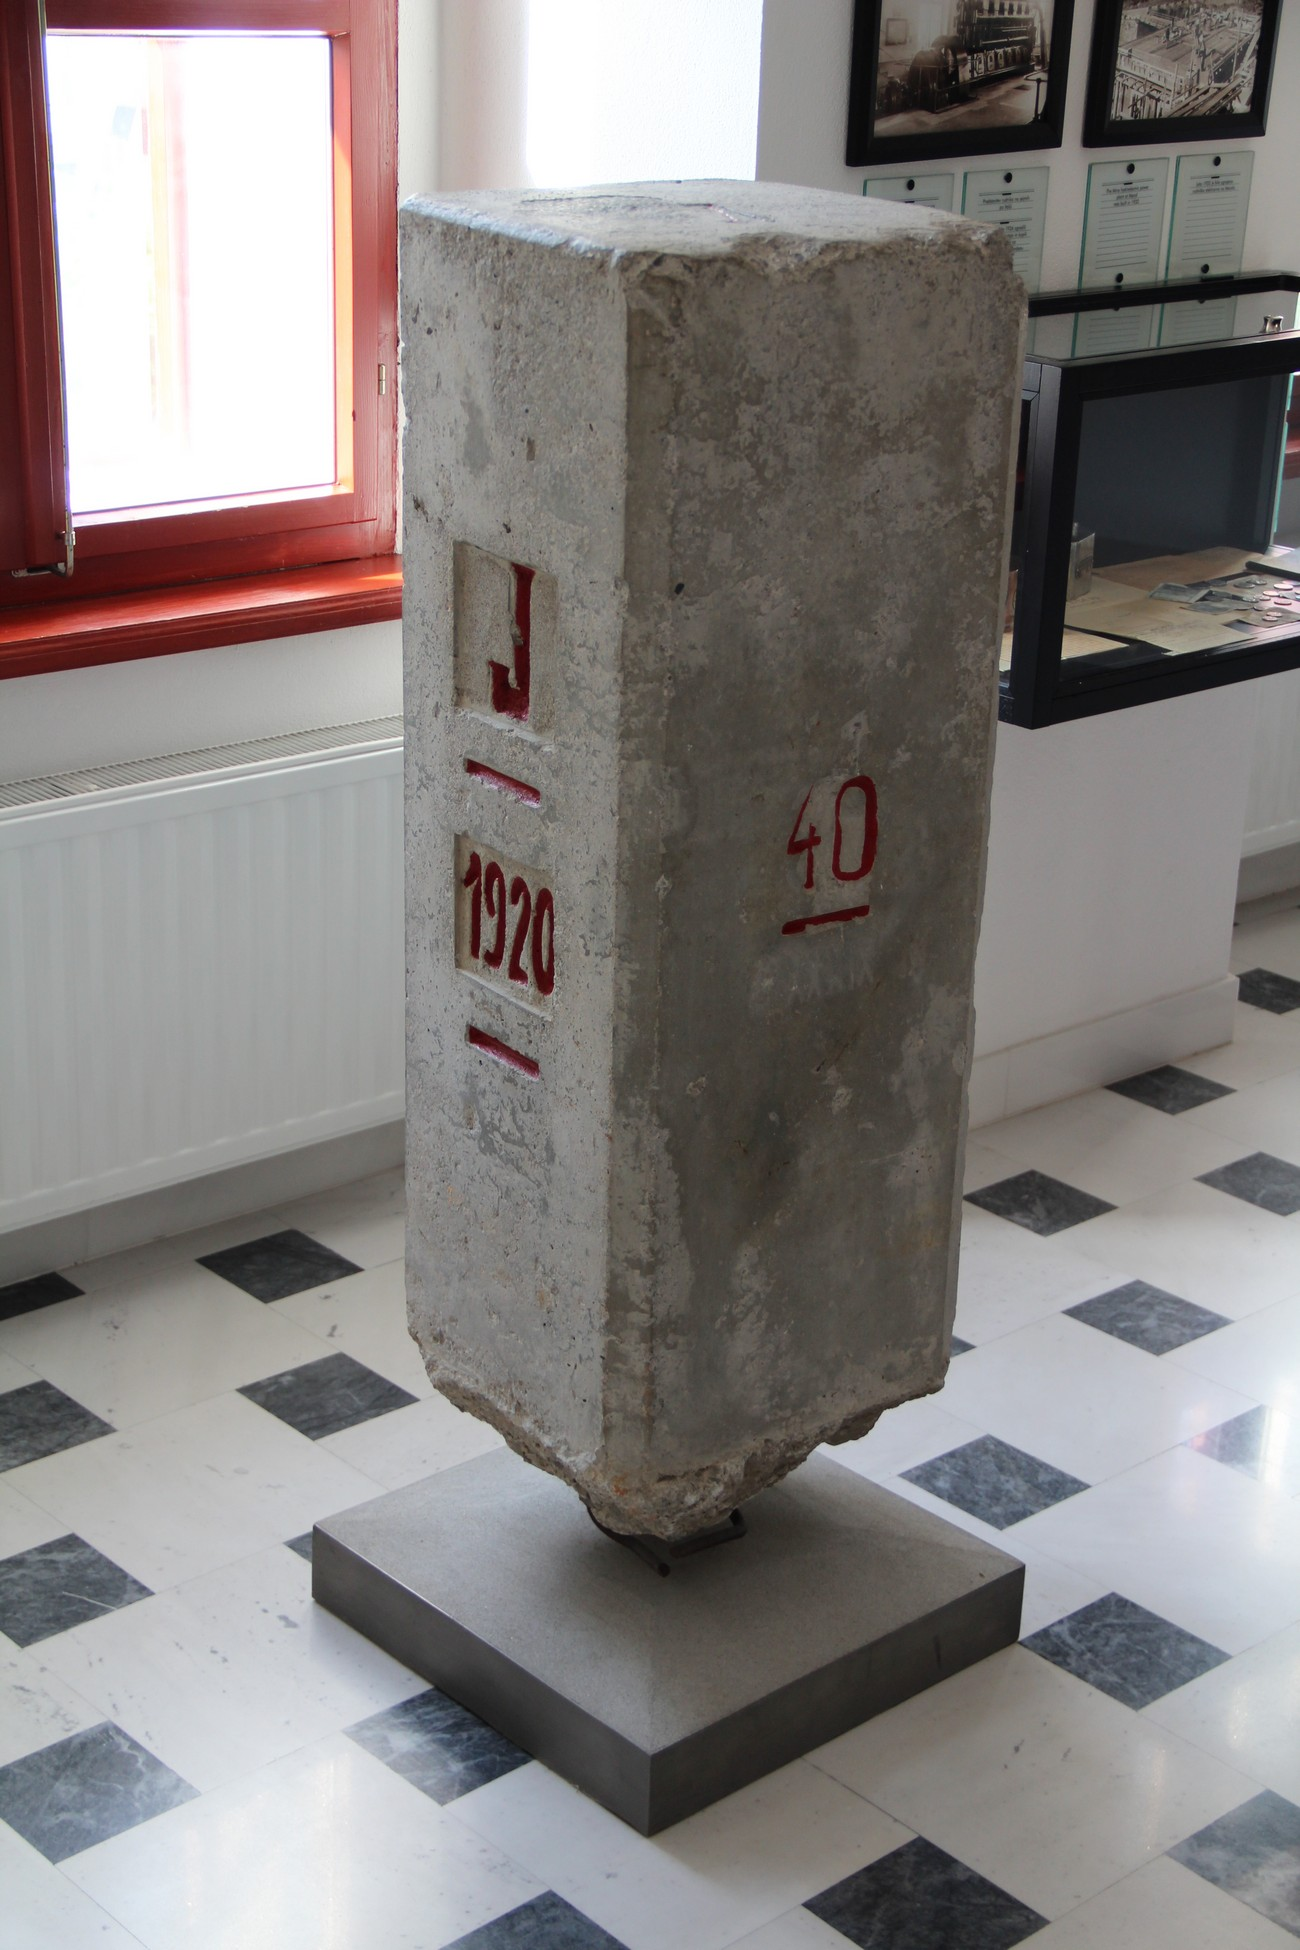 The border between Germany and Italy was marked by boundary stones of the old Rapallo Border all the way up to the sectoral boundary marker number 40, which can be seen in the photograph. New boundary markers were placed on the border with the Province of Ljubljana. Author: Darko Viler, Idrija Municipal Museum